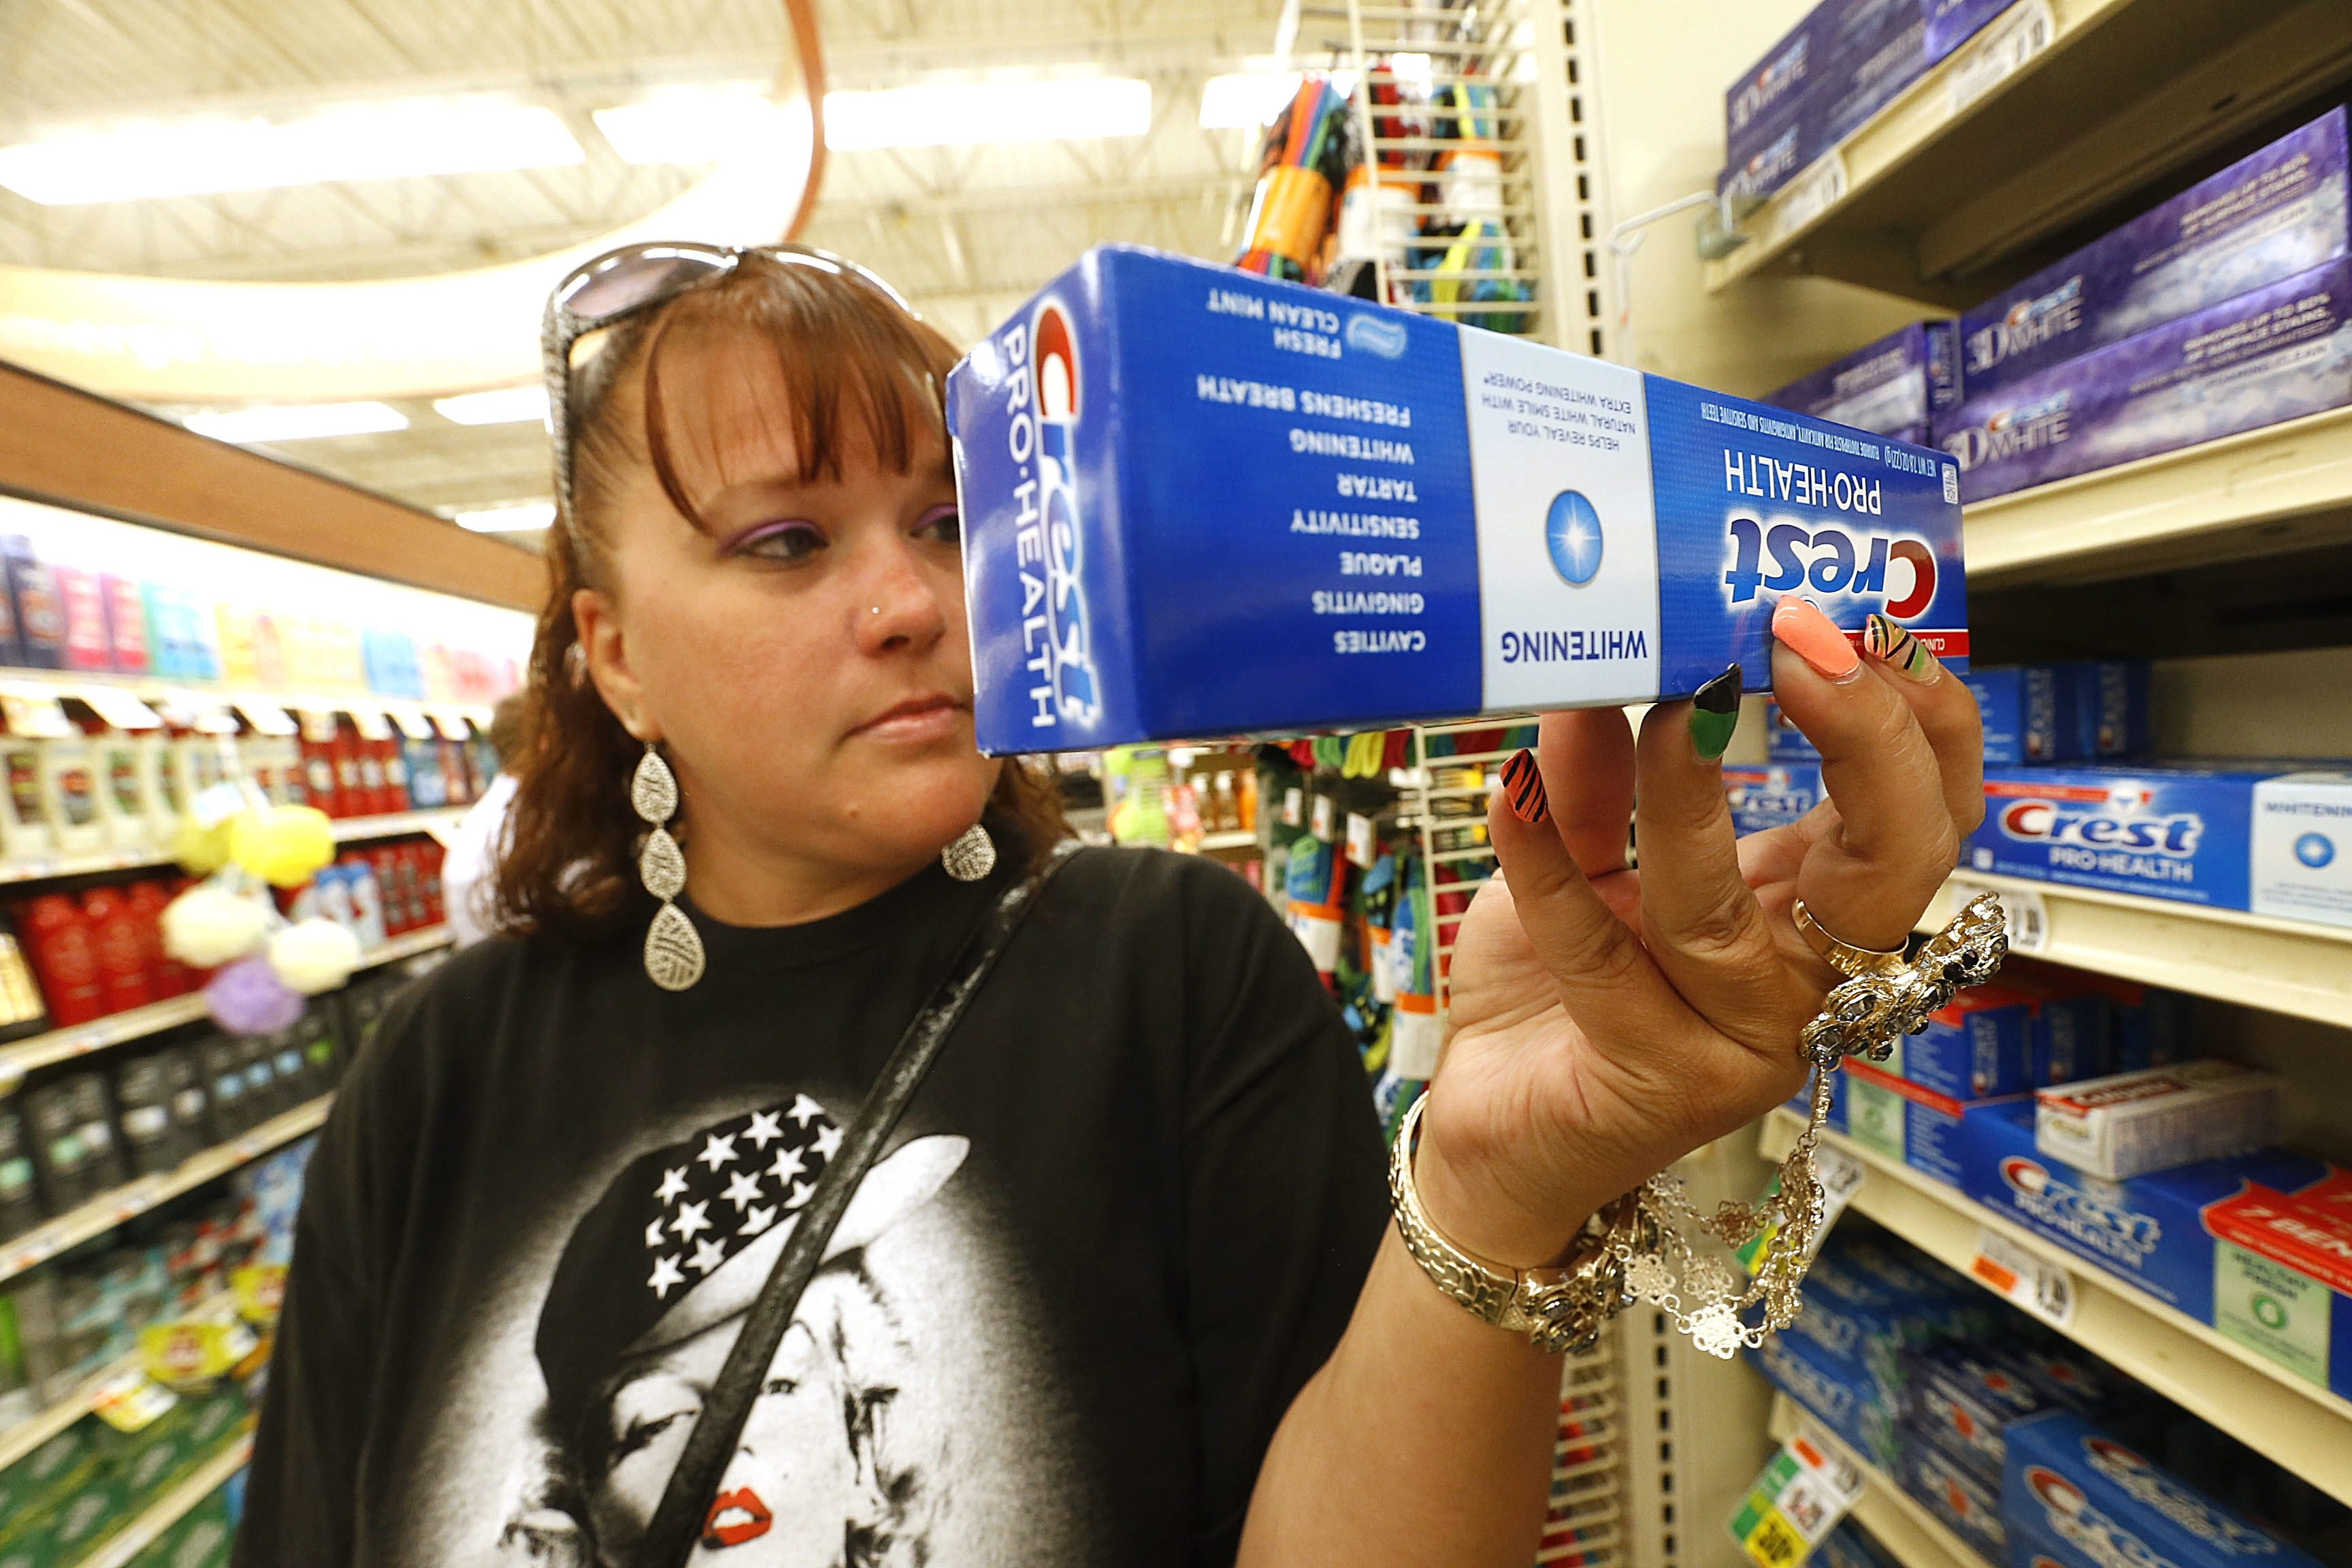 Jennifer Horn of Buffalo, stops for a moment from shopping to read the ingredients on a box of toothpaste. Many of the high end toothpastes contain tiny microbeads, like these being offered at Tops Friendly Markets on Amherst St. in Buffalo on Tuesday, Aug. 11, 2015.  (Robert Kirkham/Buffalo News)